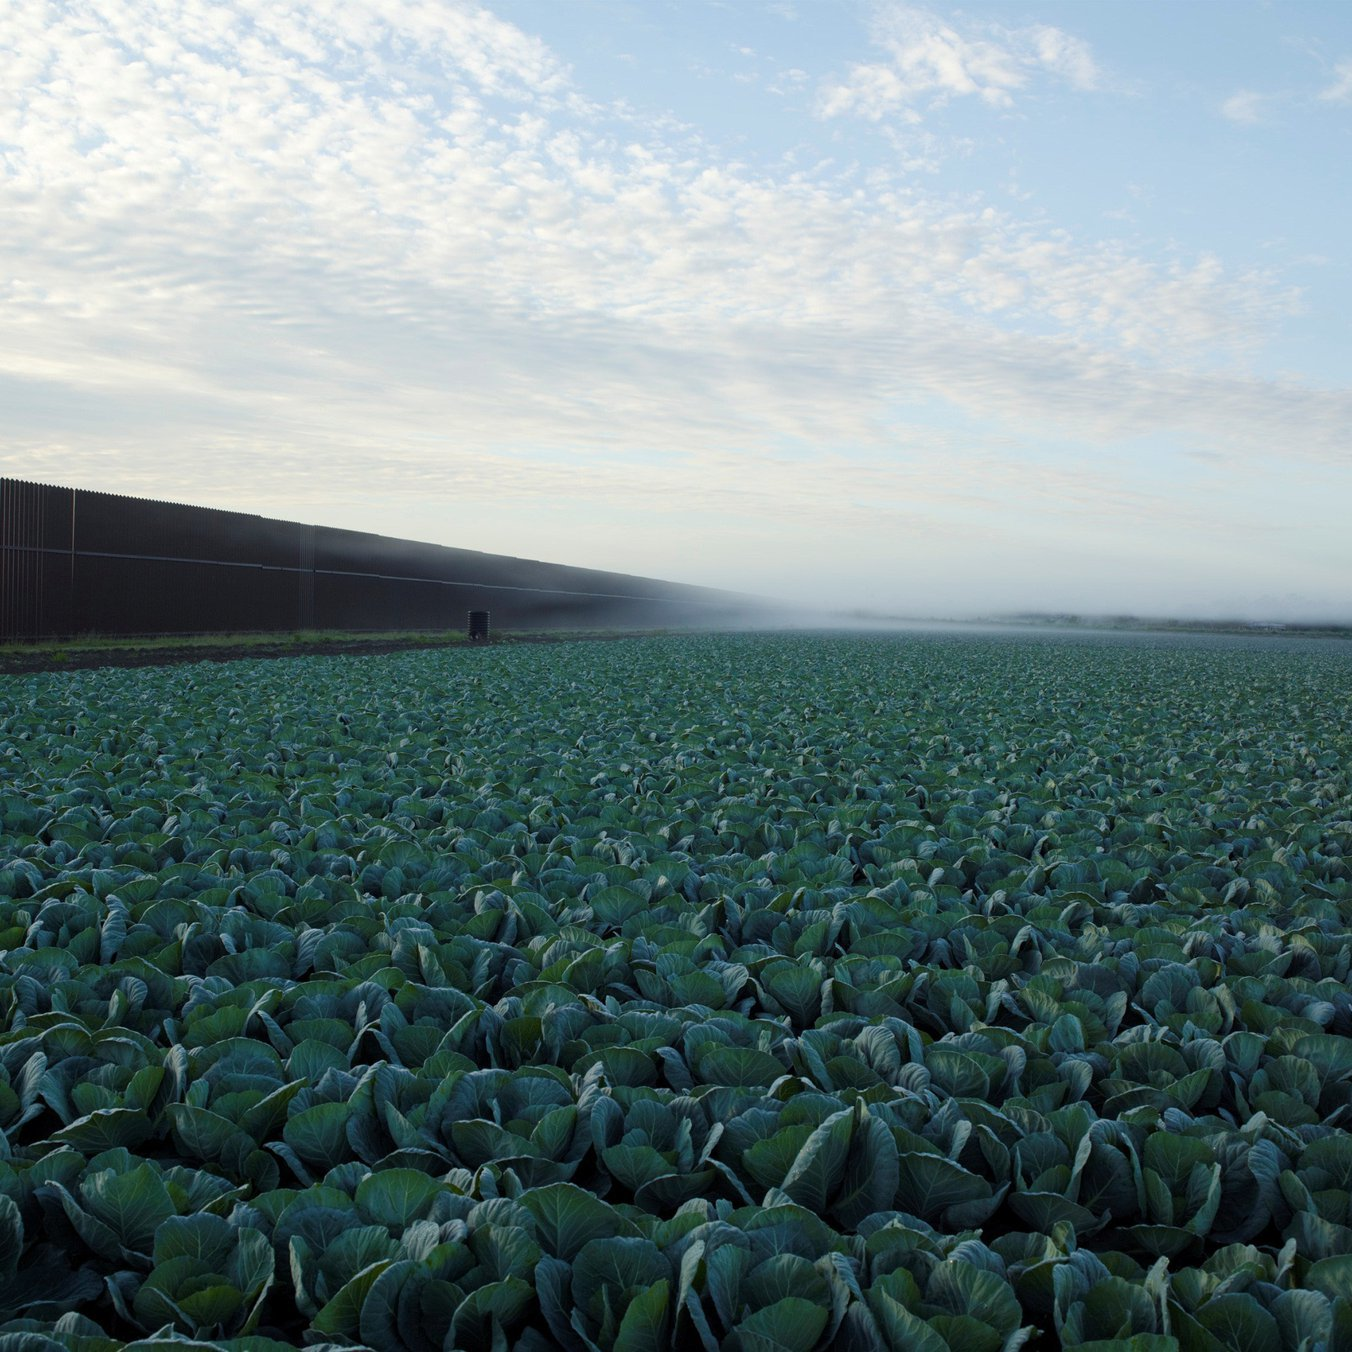 Richard Misrach, Cabbage Crop Near Brownsville, Texas, 2015. Courtesy of Pace.